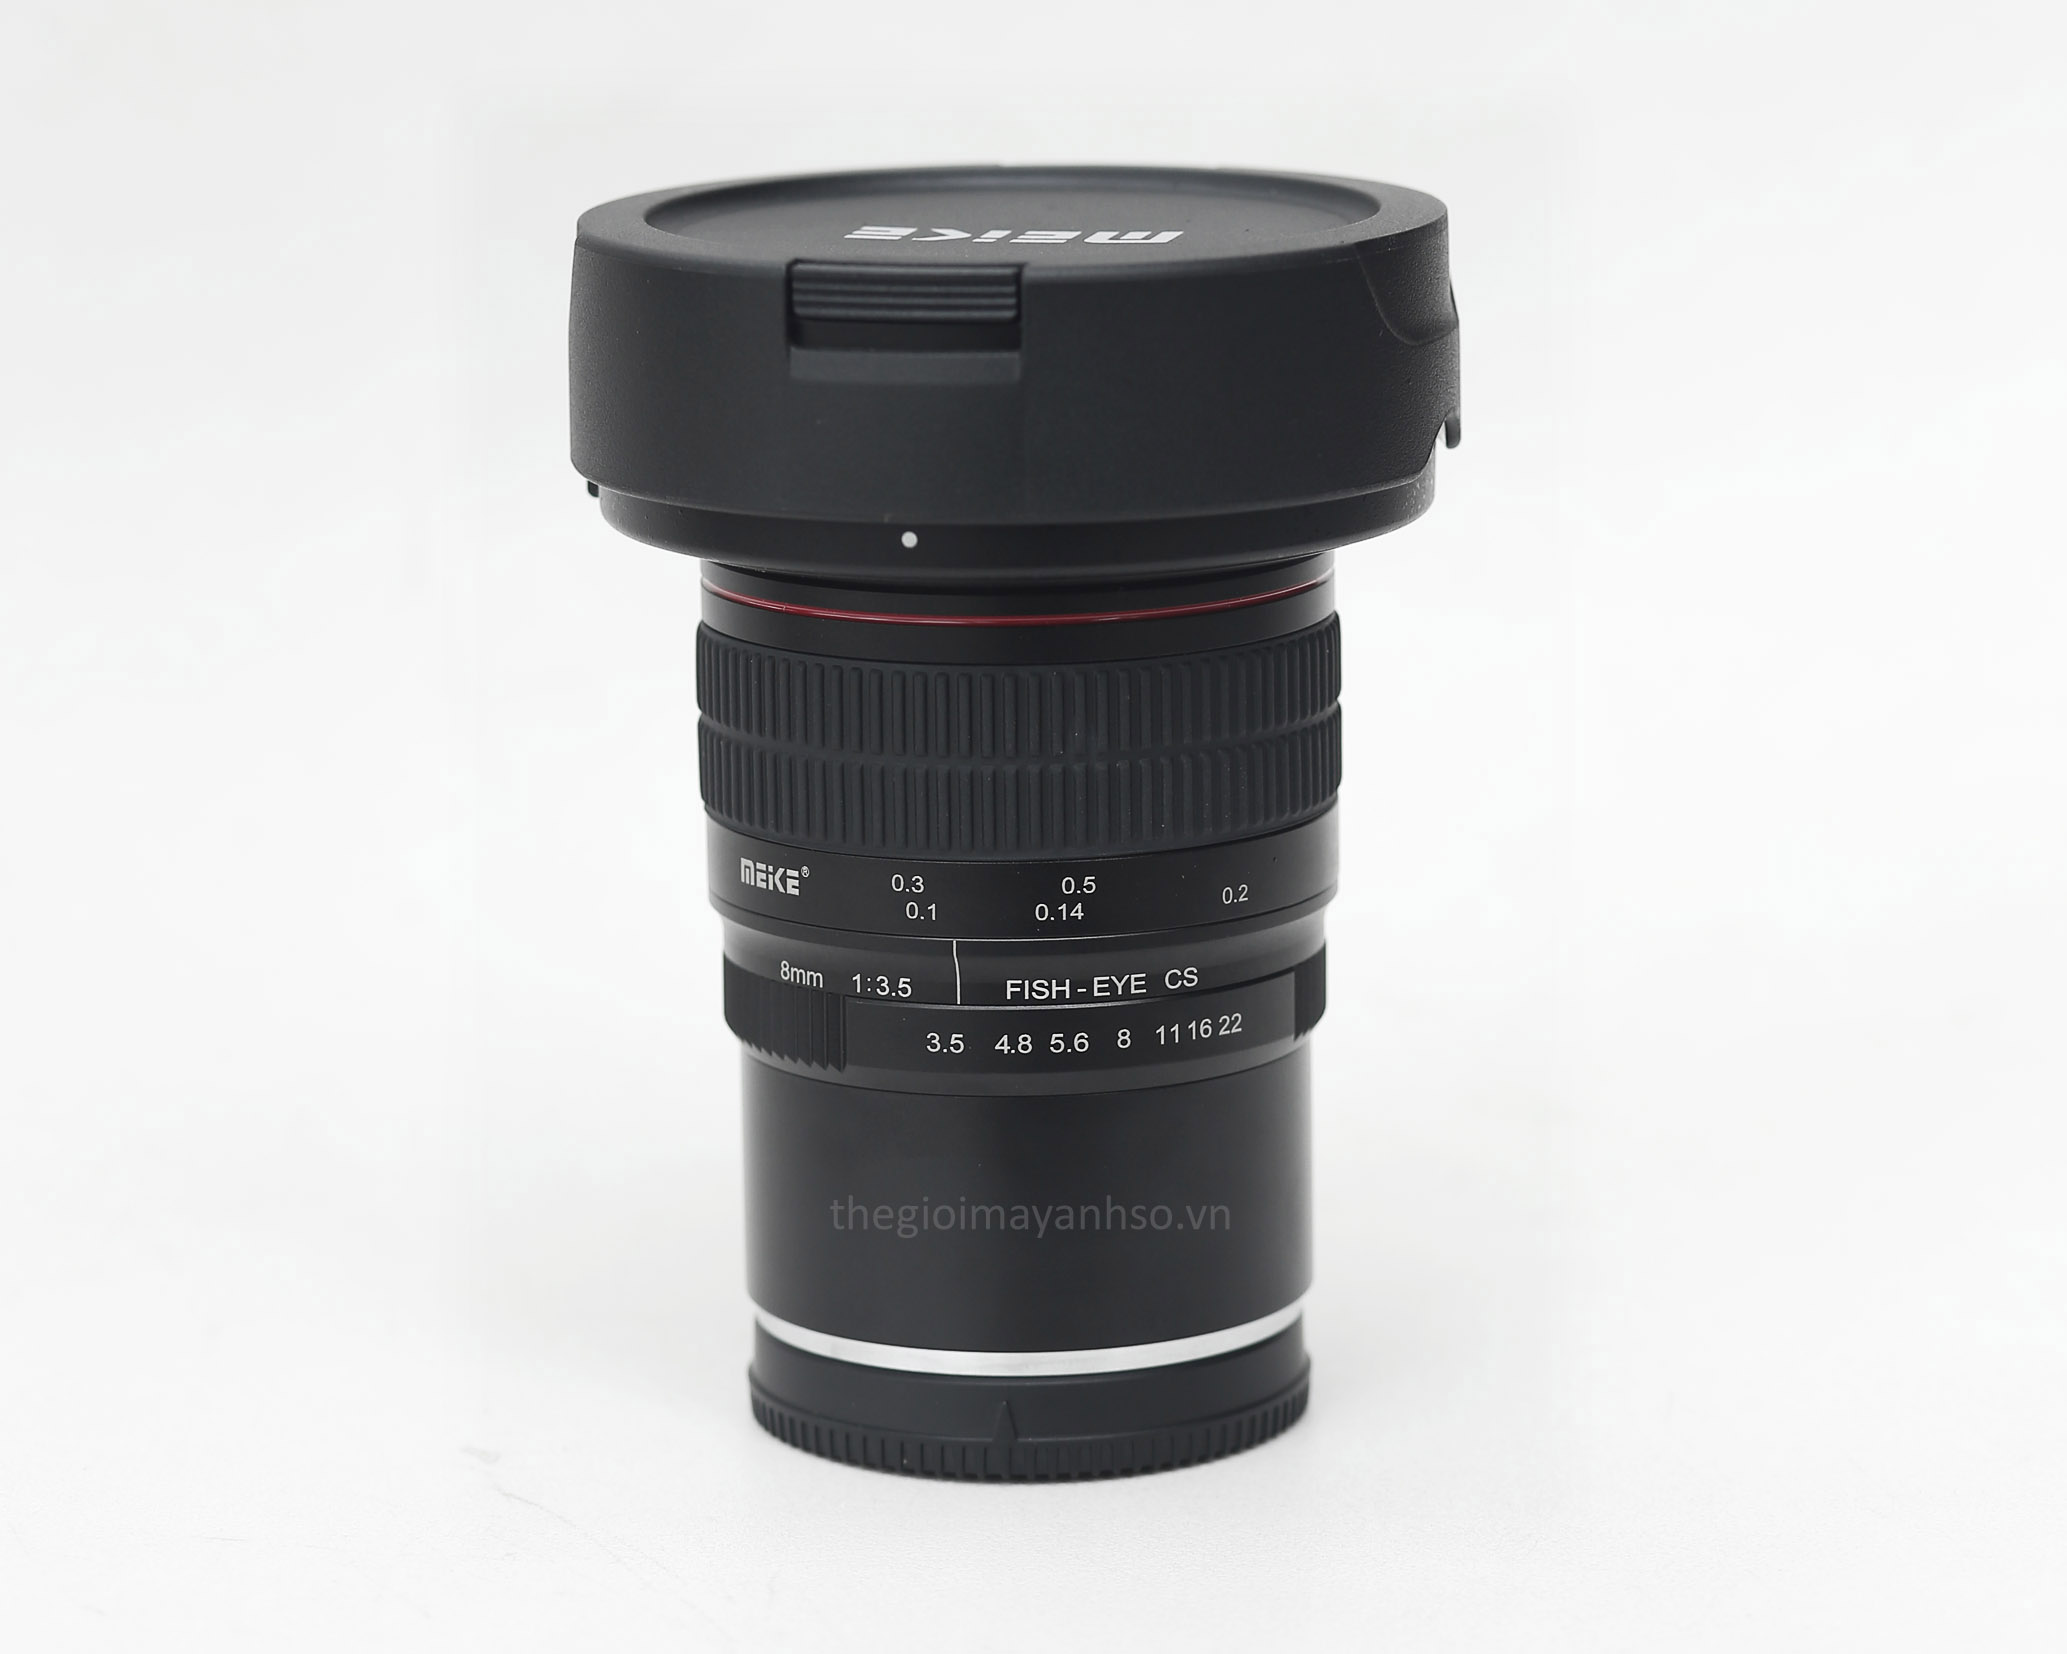 Meike 8mm f/3.5 Fish Eye for Canon EOS-M